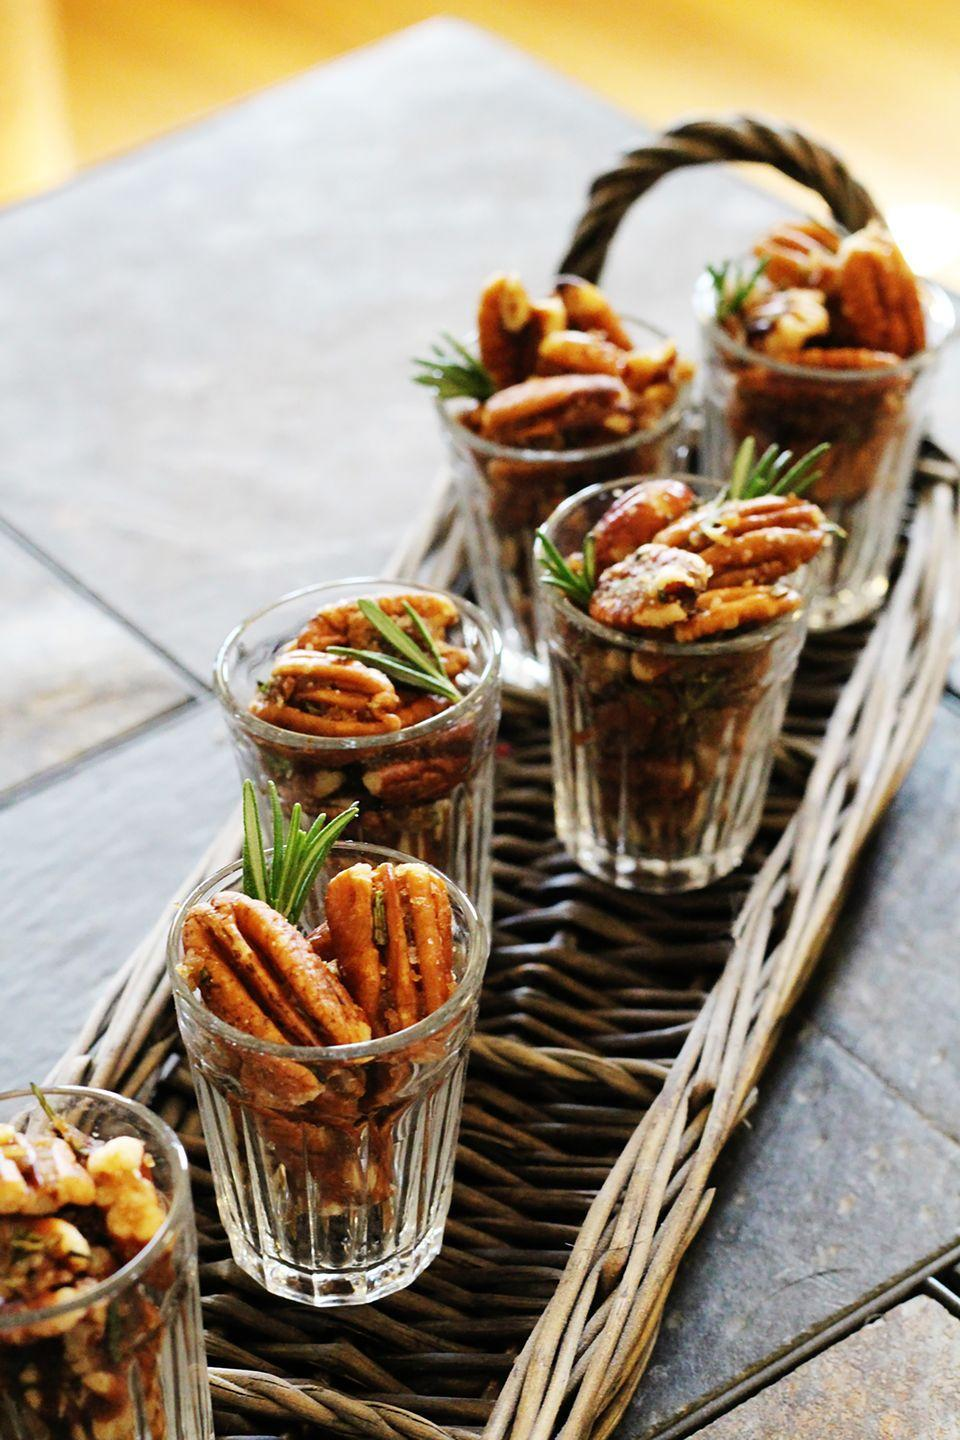 """<p>Toss pecans with butter and brown sugar, then toast them and sprinkle with sea salt for a tasty bar snack.</p><p><strong>Get the recipe at </strong><strong><a href=""""https://savory-pantry.squarespace.com/blog/2014/4/28/recipe-brown-sugar-brown-butter-derby-pecans"""" rel=""""nofollow noopener"""" target=""""_blank"""" data-ylk=""""slk:Taste.Savor.Share"""" class=""""link rapid-noclick-resp"""">Taste.Savor.Share</a>.</strong></p>"""